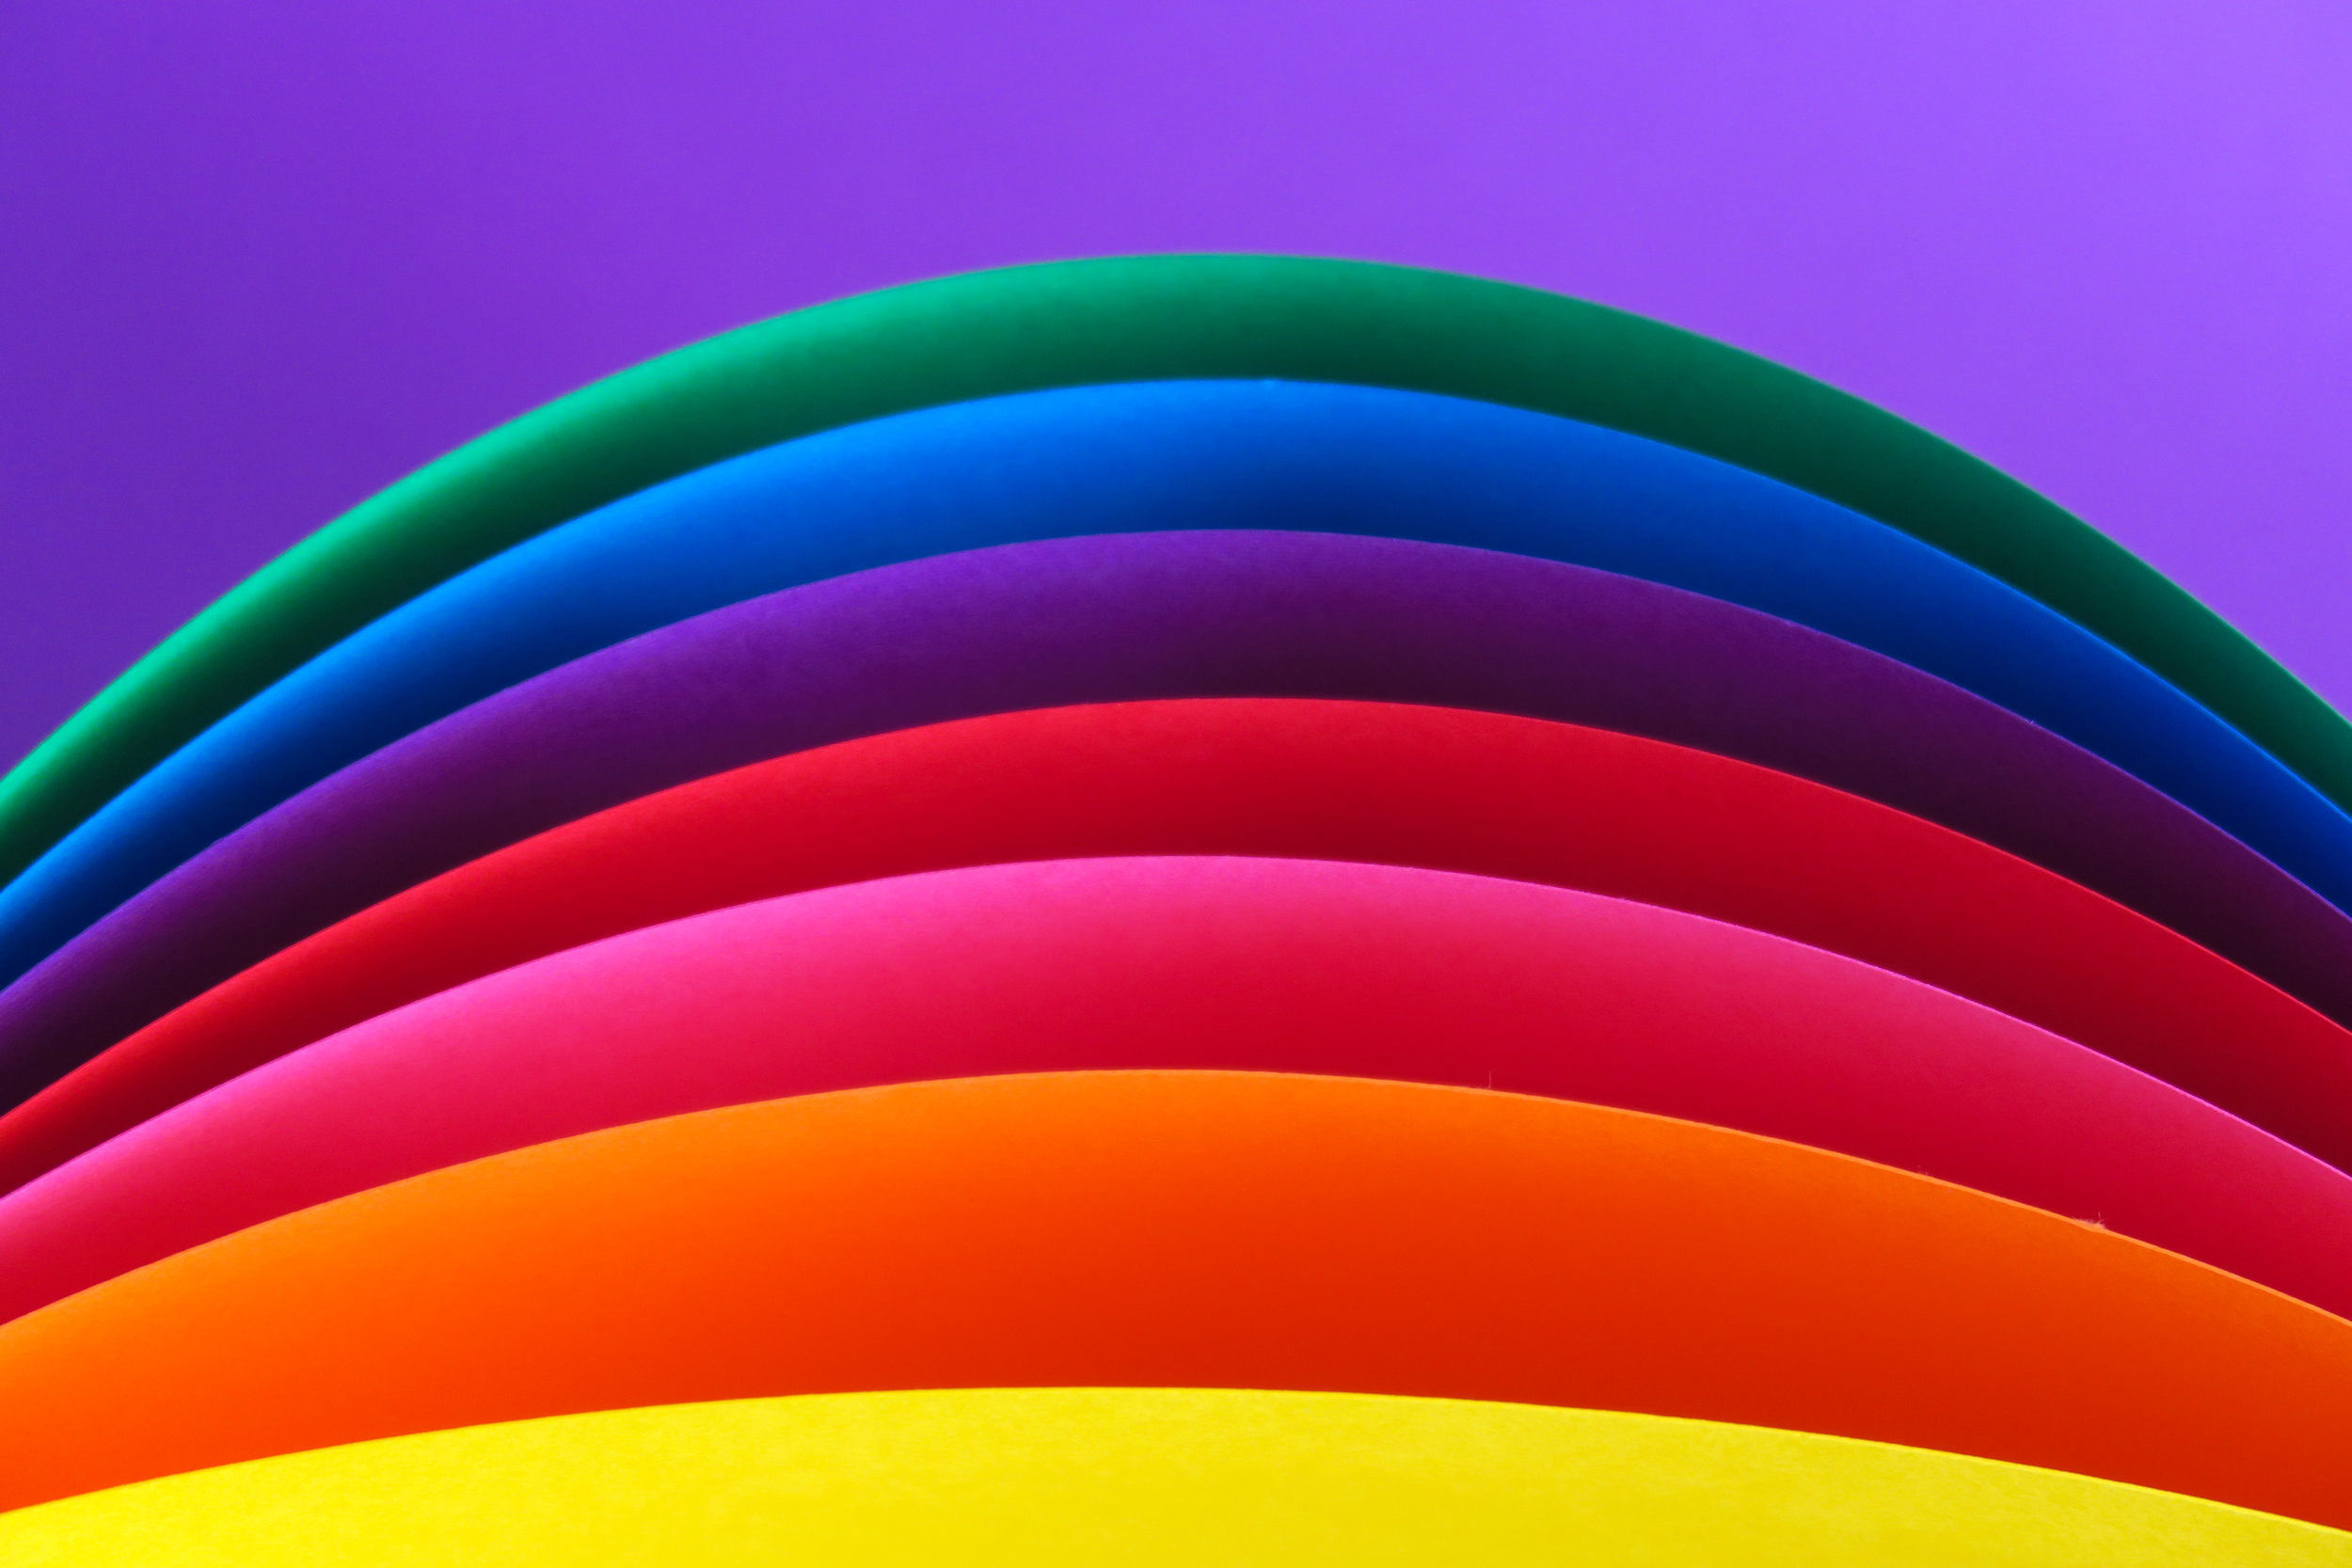 Color Theory - the psychology of color in design